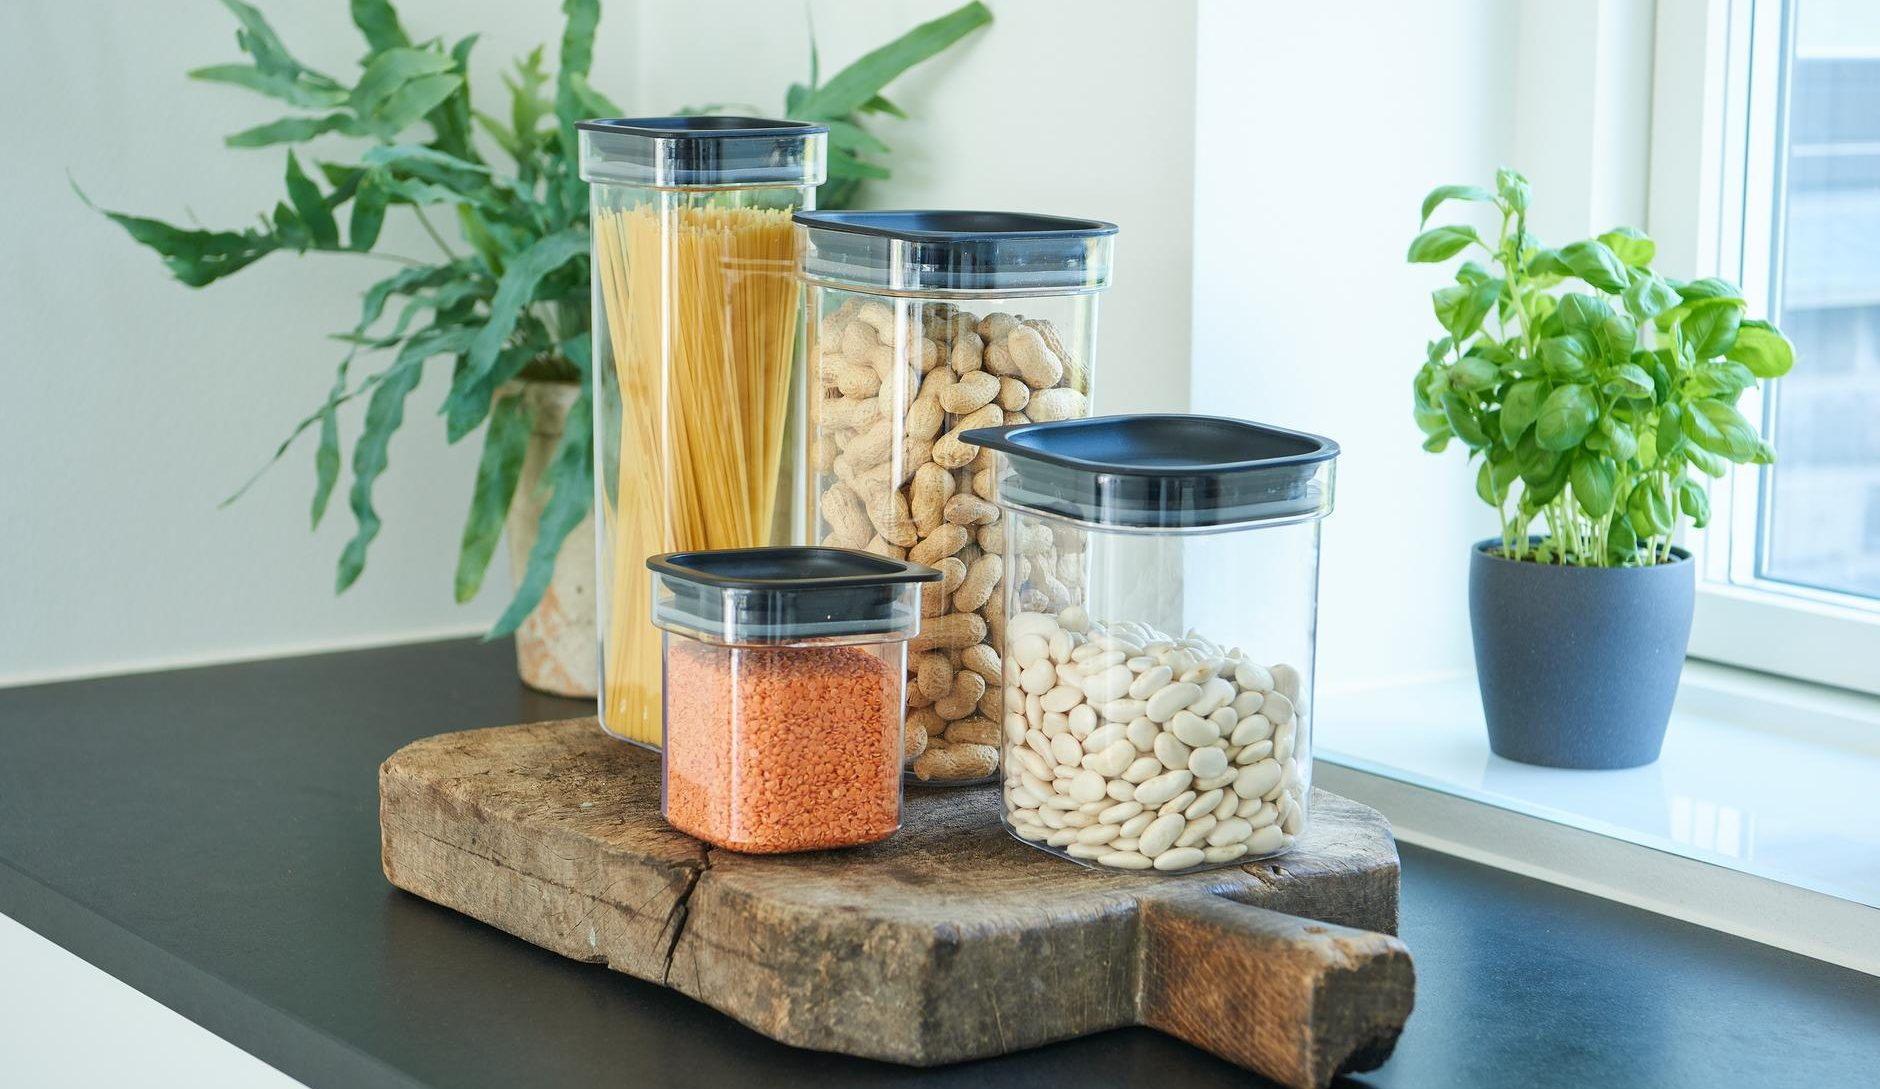 Hamburg is an elegant series of canisters for storing dry food. Containers have round corners and are available in 4 sizes.